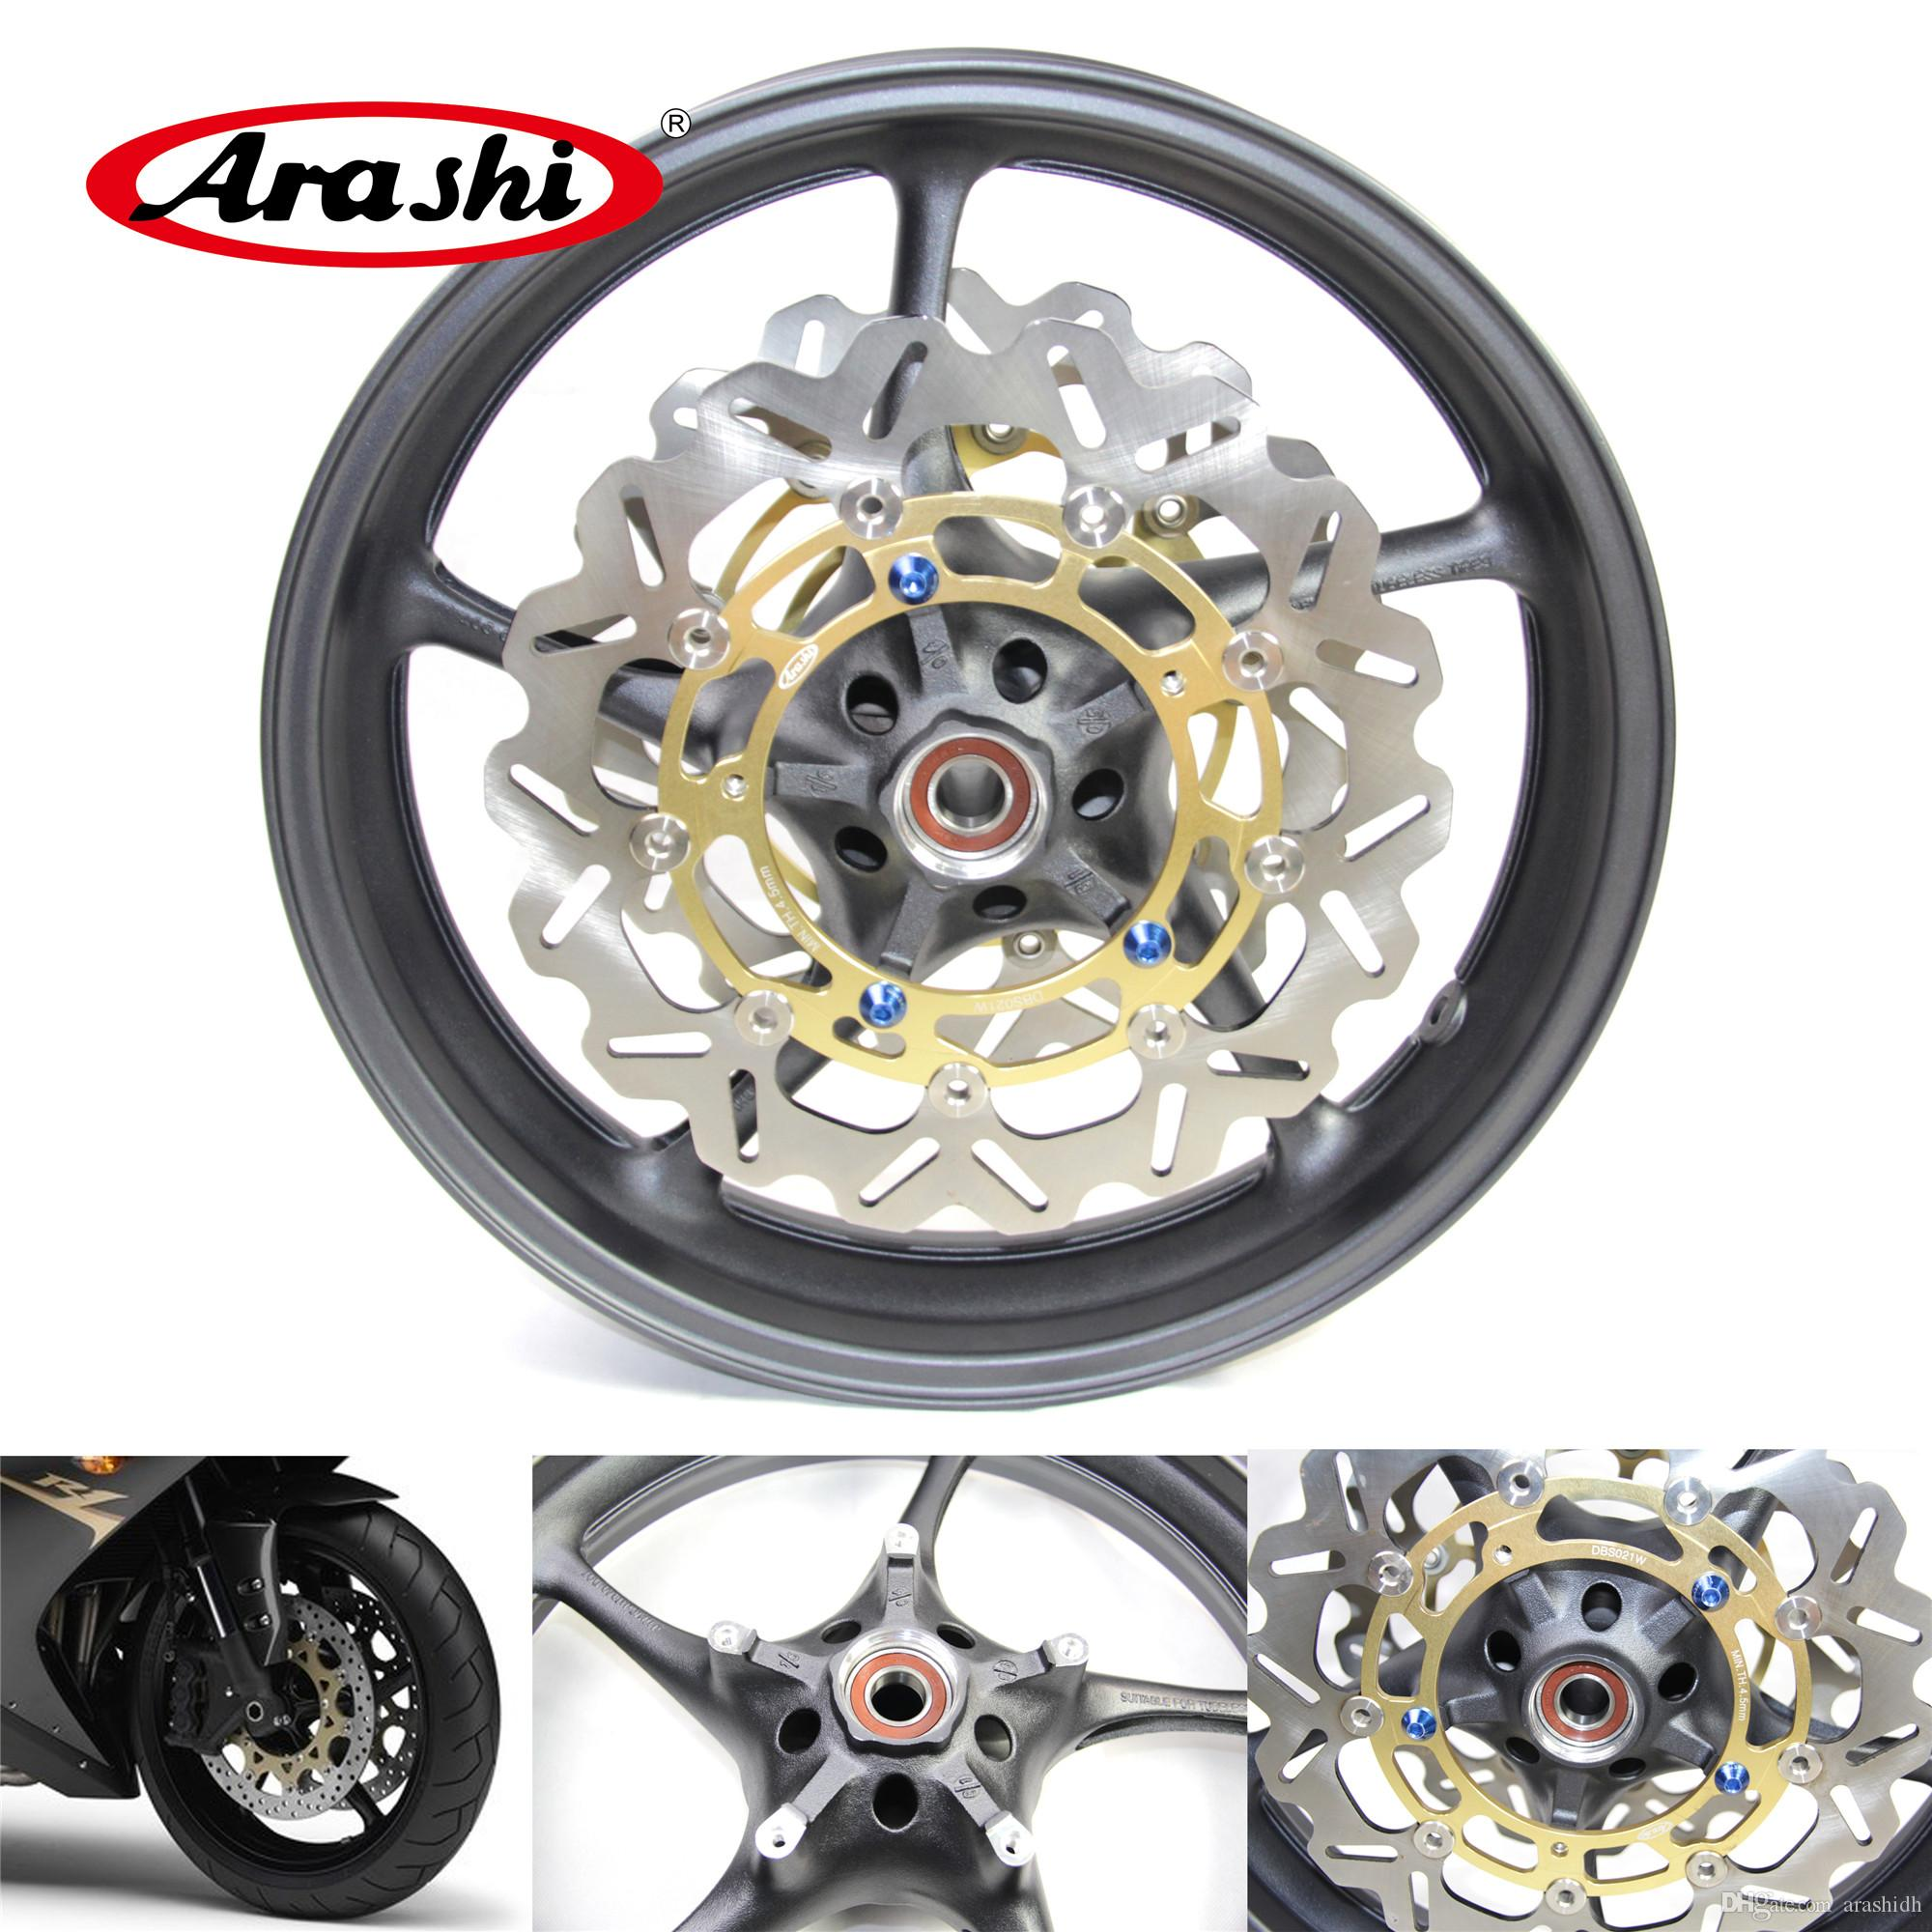 Arashi For Yamaha YZF R6 2006 - 2012 Front Wheel Rim Brake Disc Disk Rotor Motorcycle Parts 2007 2008 2009 2010 2011 YZF-R1 YZF-R6